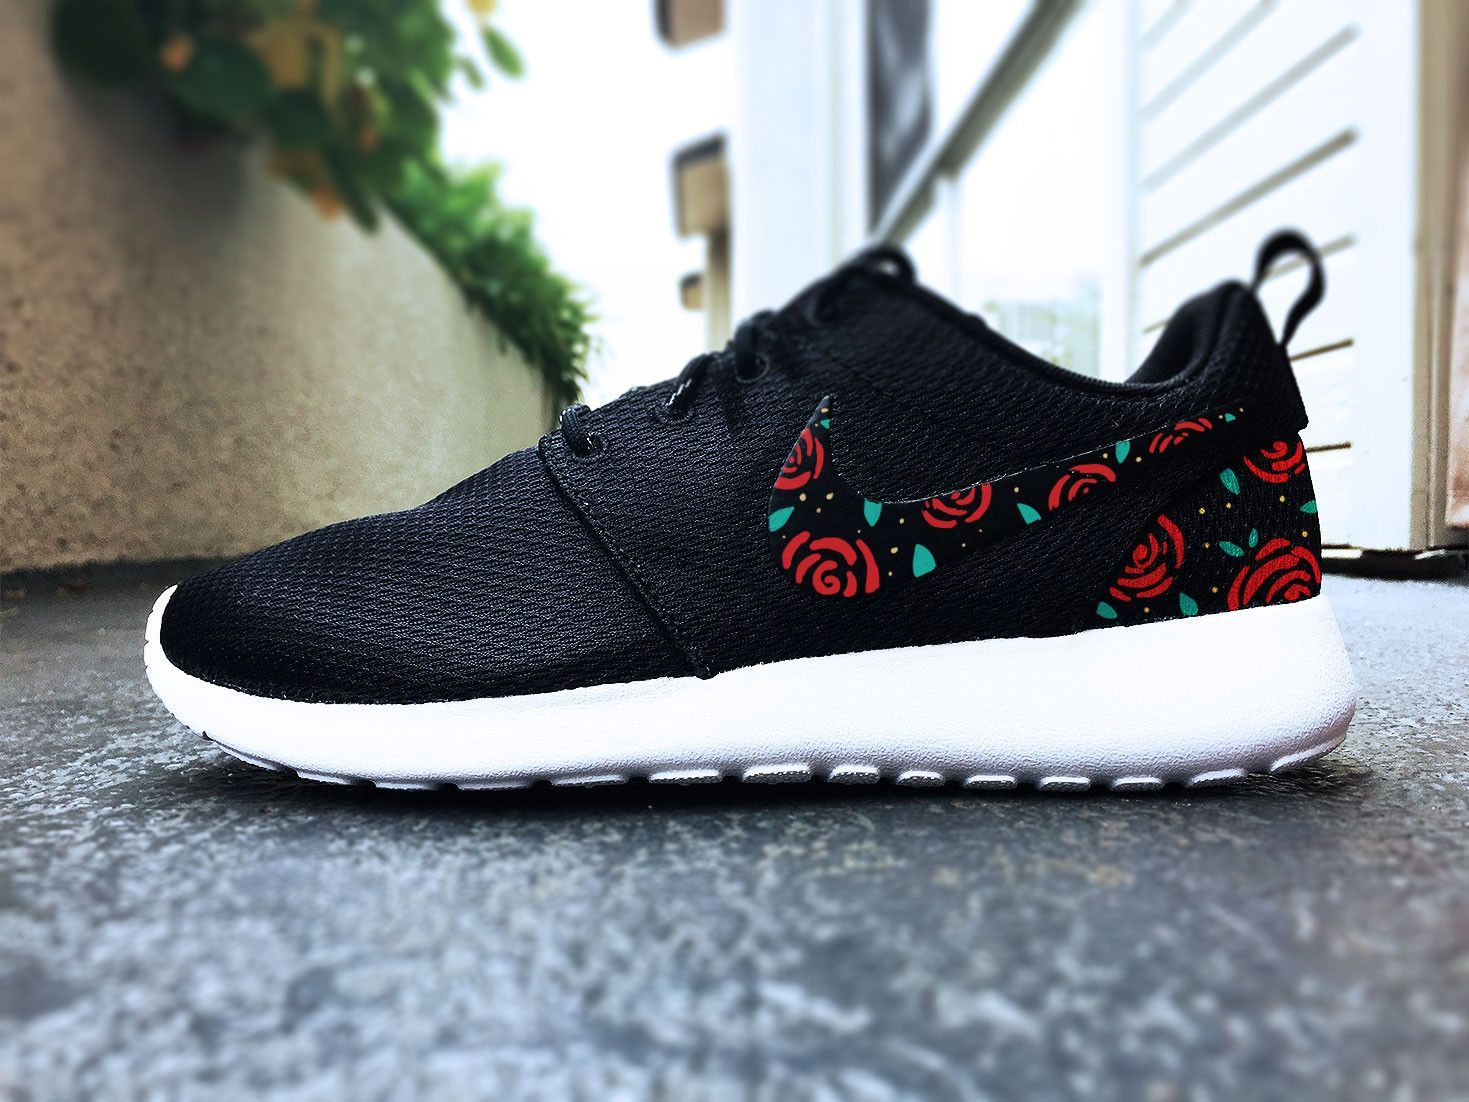 more photos 5617d b5dd0 Womens Custom Nike Roshe Run sneakers, Roses design, black and white Rose  trendy design, Black with red roses and gold speckles